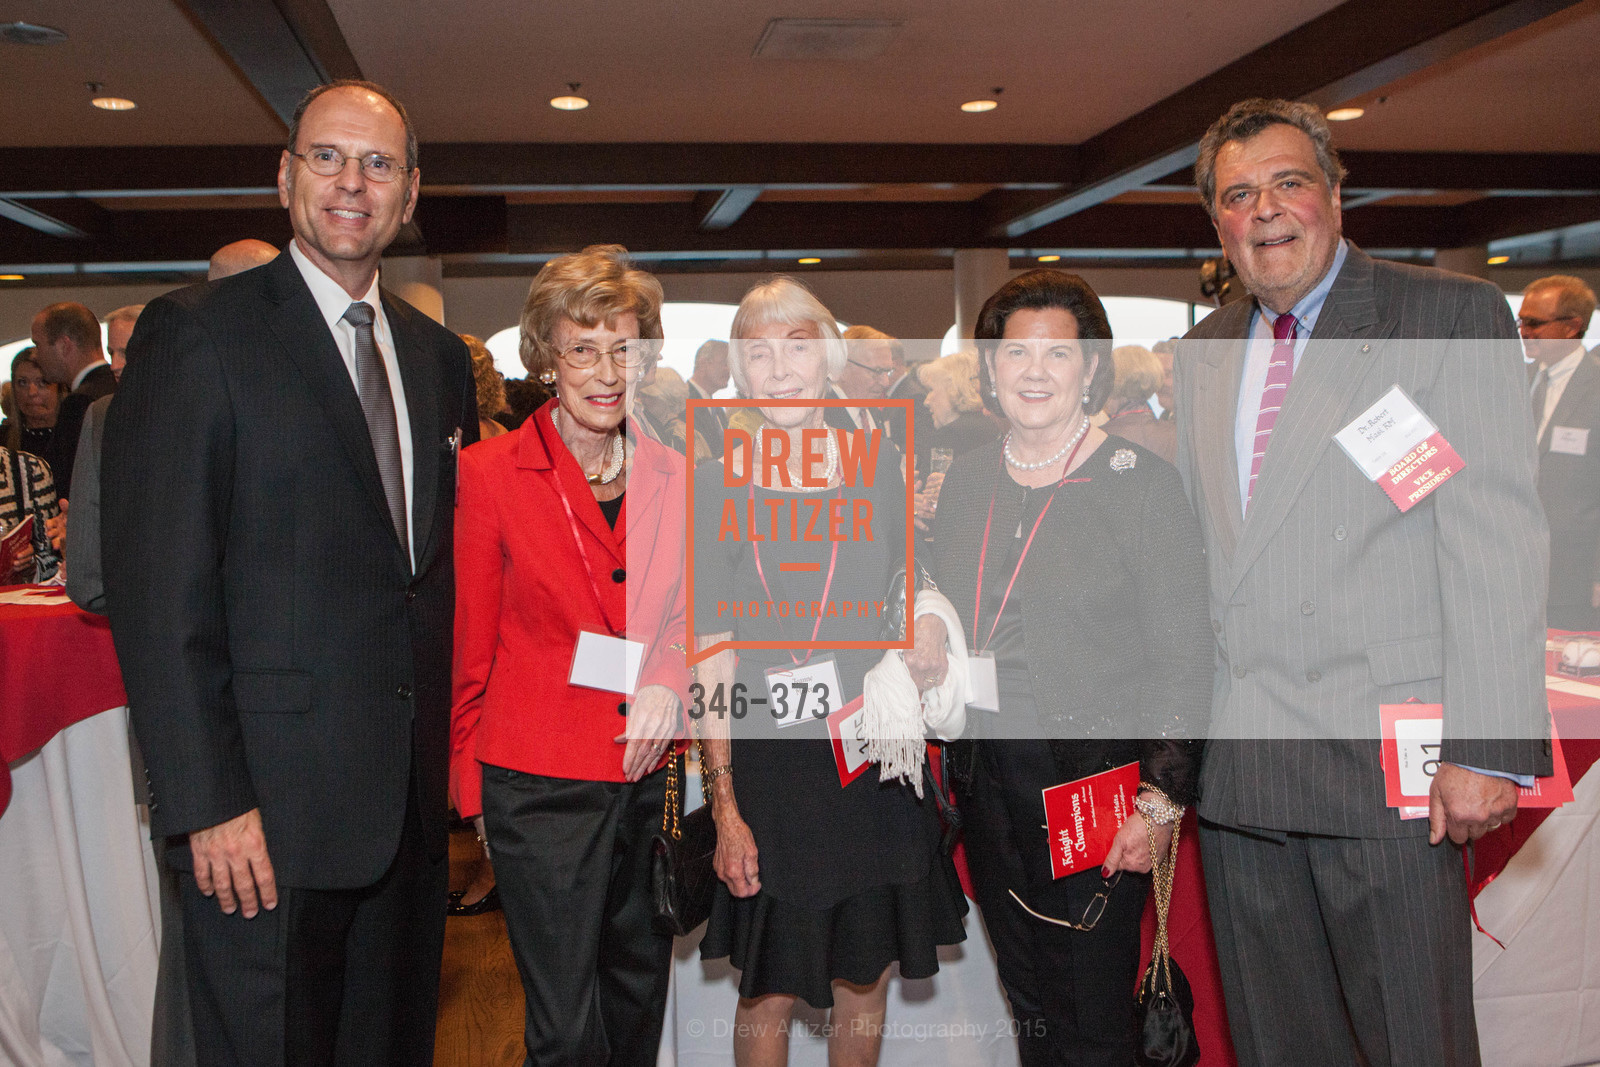 Bill Vaculin, Joan Maggie, Jeanne Miller, Barbara Fritz, Robert Masi, Sovereign Order of Malta Presents: A Knight for Champions, 7th Annual Silver Chalice Awards Dinner, St. Francis Yacht Club. 99 Yacht Rd, October 13th, 2015,Drew Altizer, Drew Altizer Photography, full-service agency, private events, San Francisco photographer, photographer california